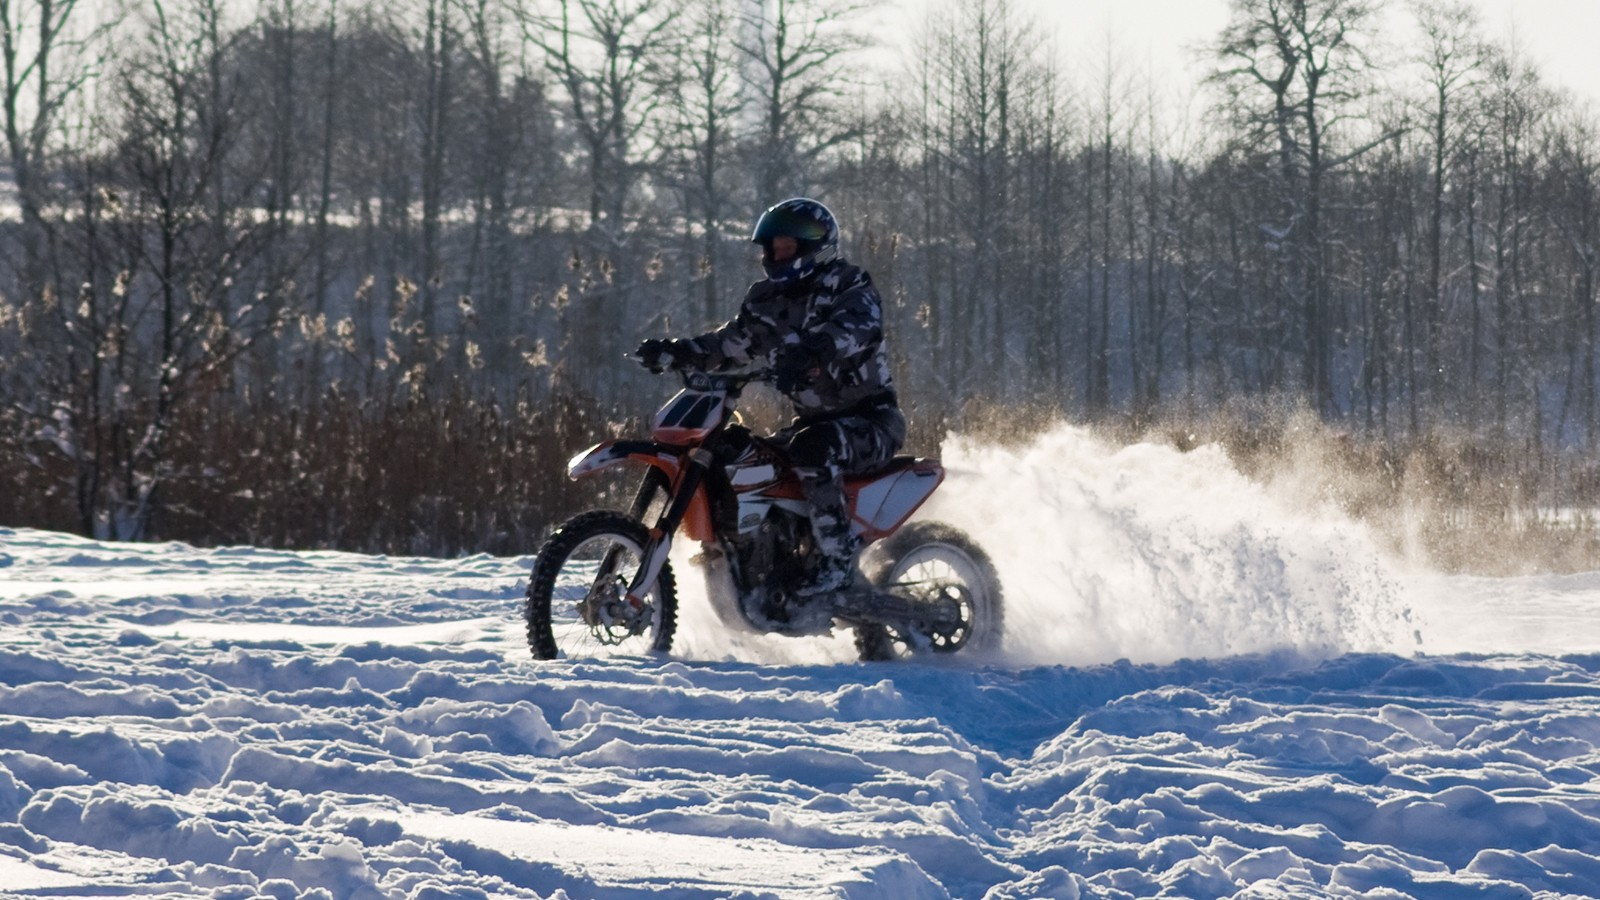 race on a motorcycle in the winter